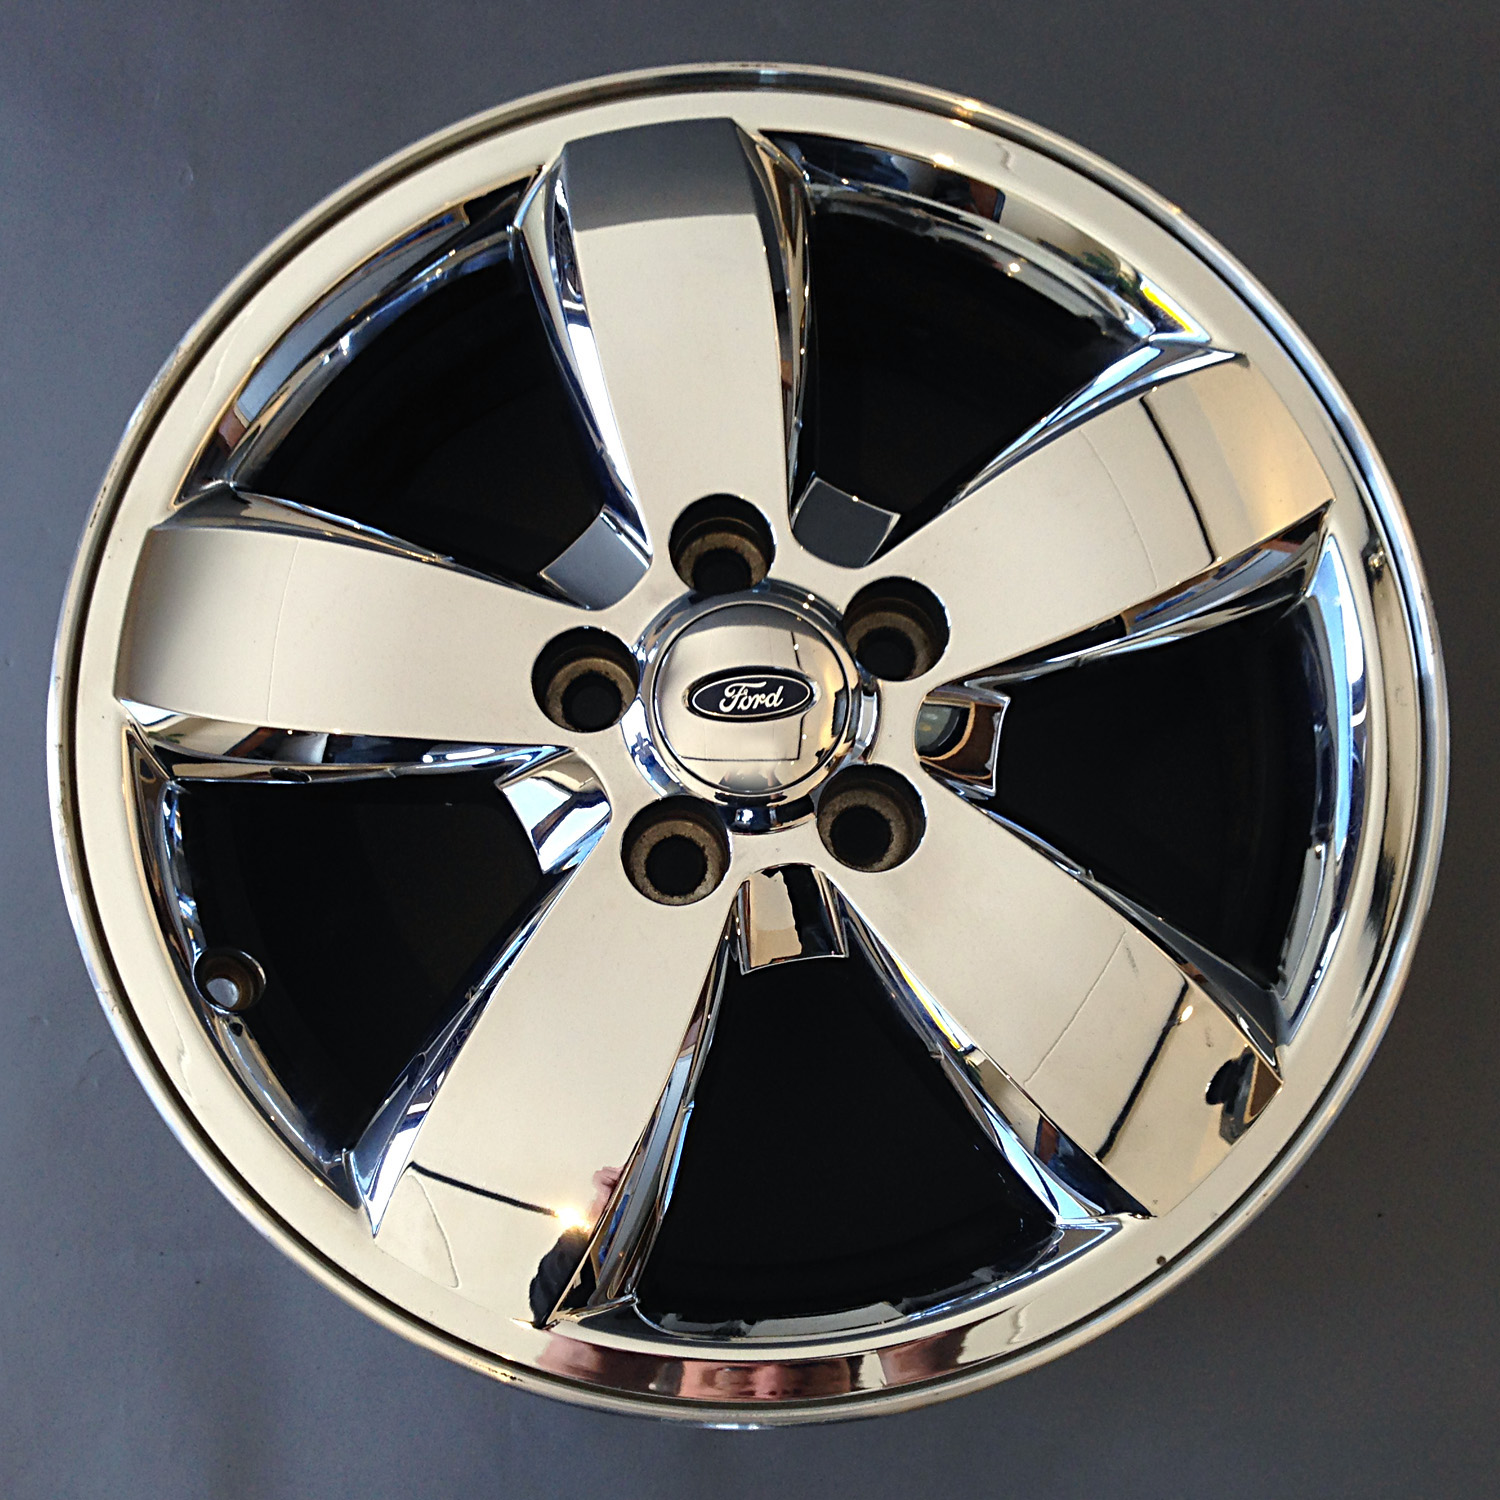 Used Ford Wheels : Used and new oem rims summer winter wheels